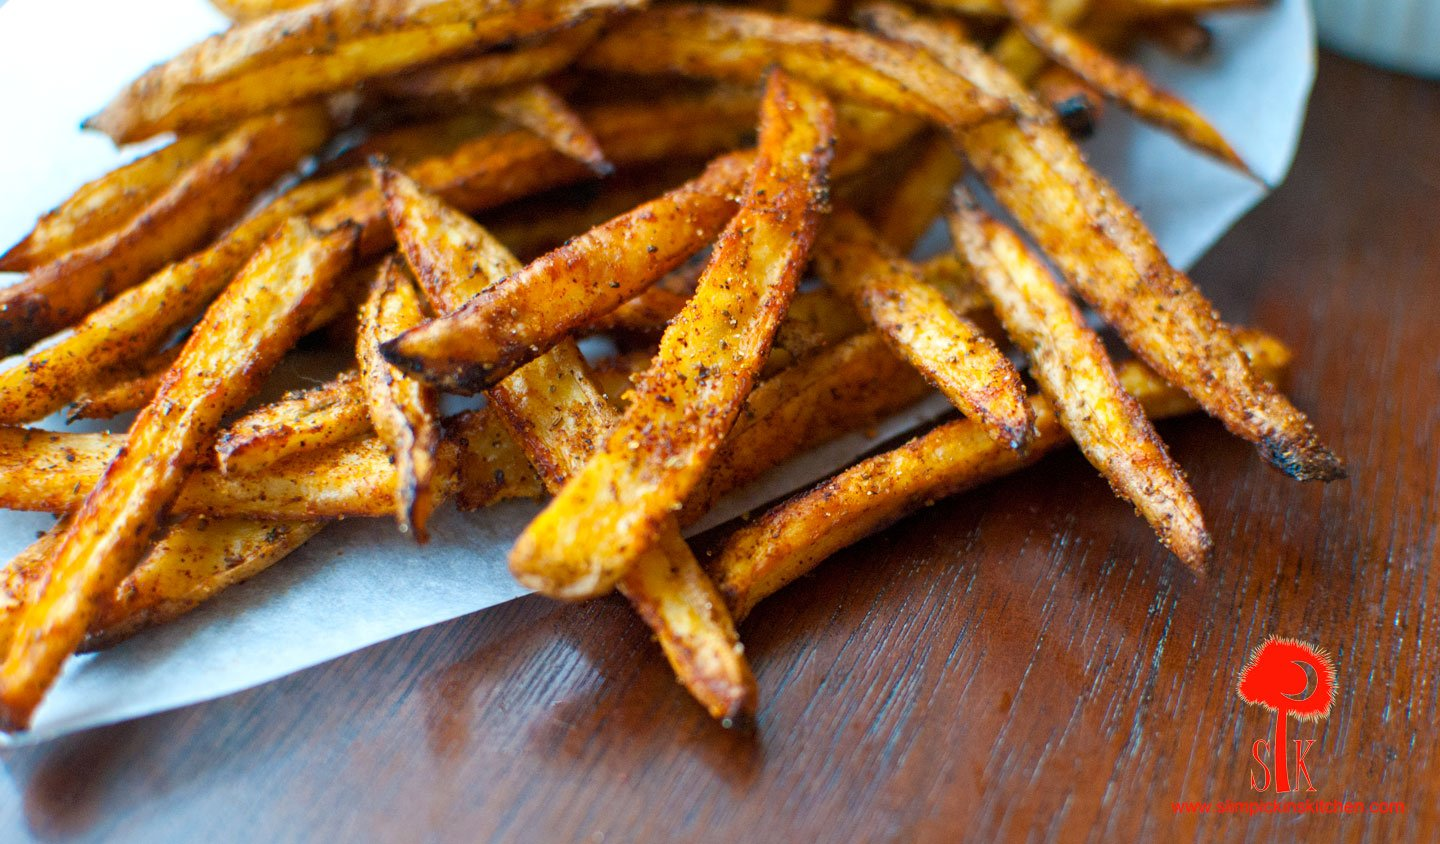 baked french fries oven baked french fries delicious oven french fries ...